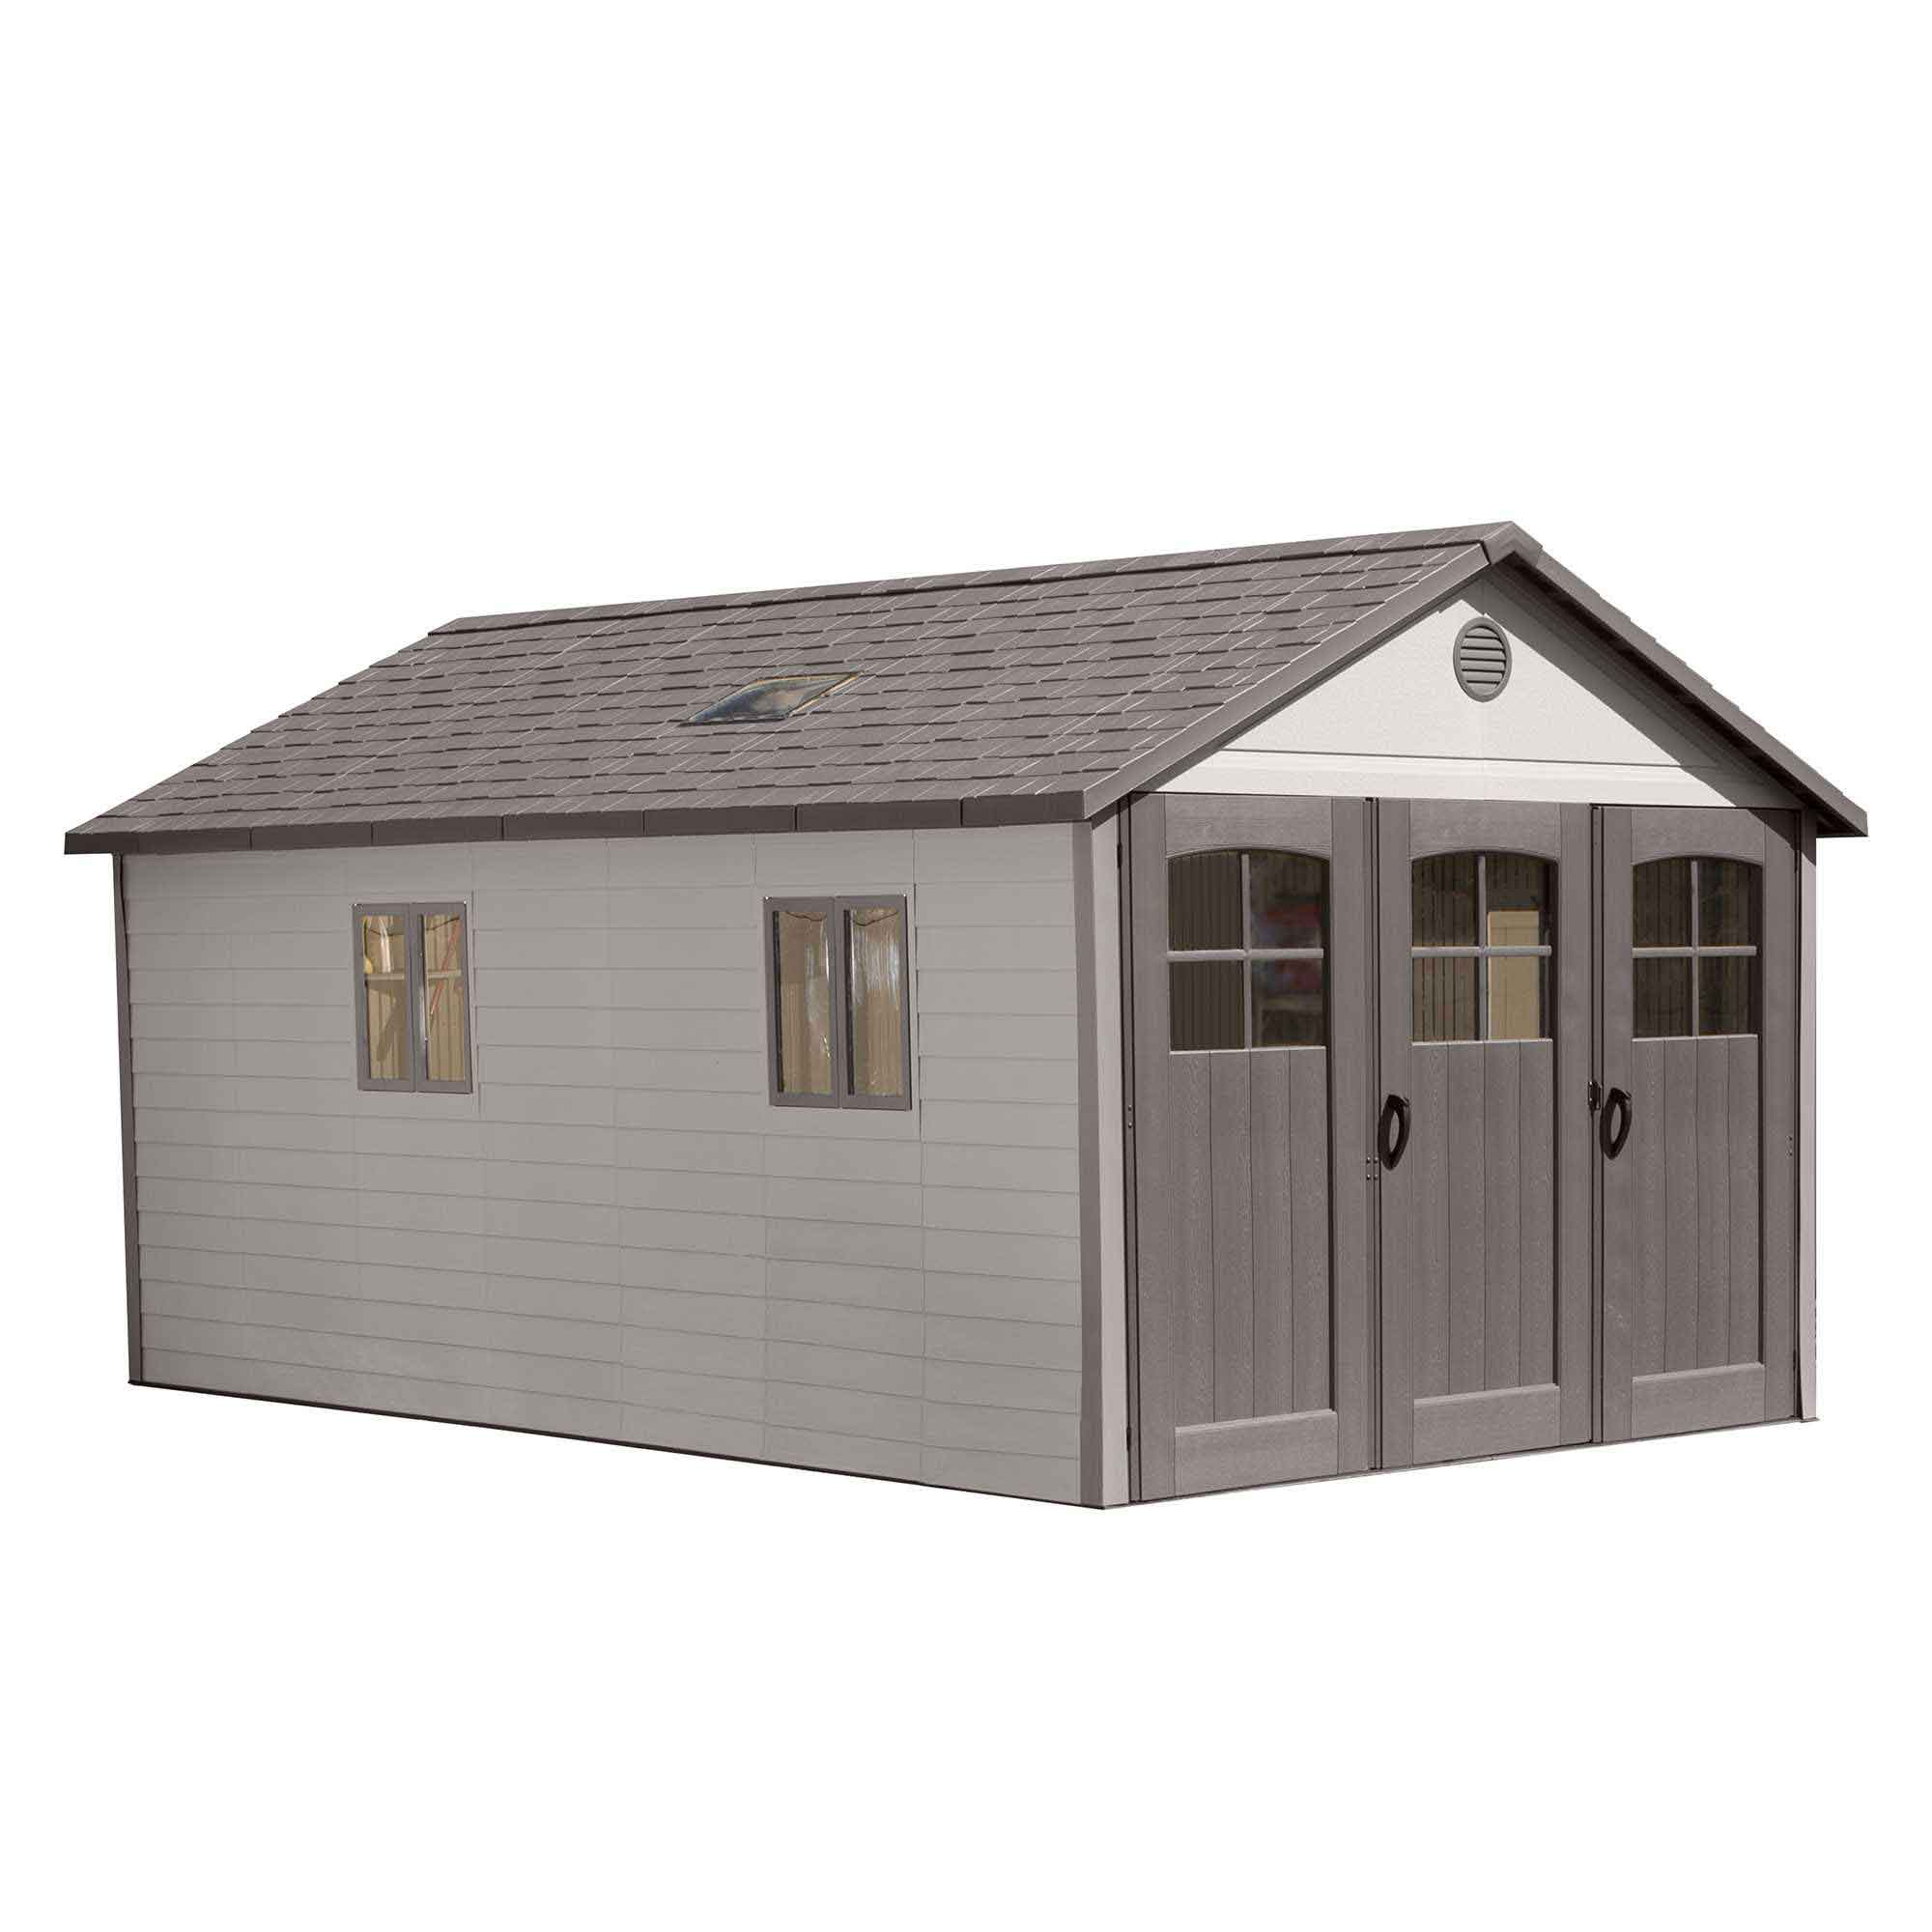 Lifetime Garage Shed previously 11 x 18 5 on Sale